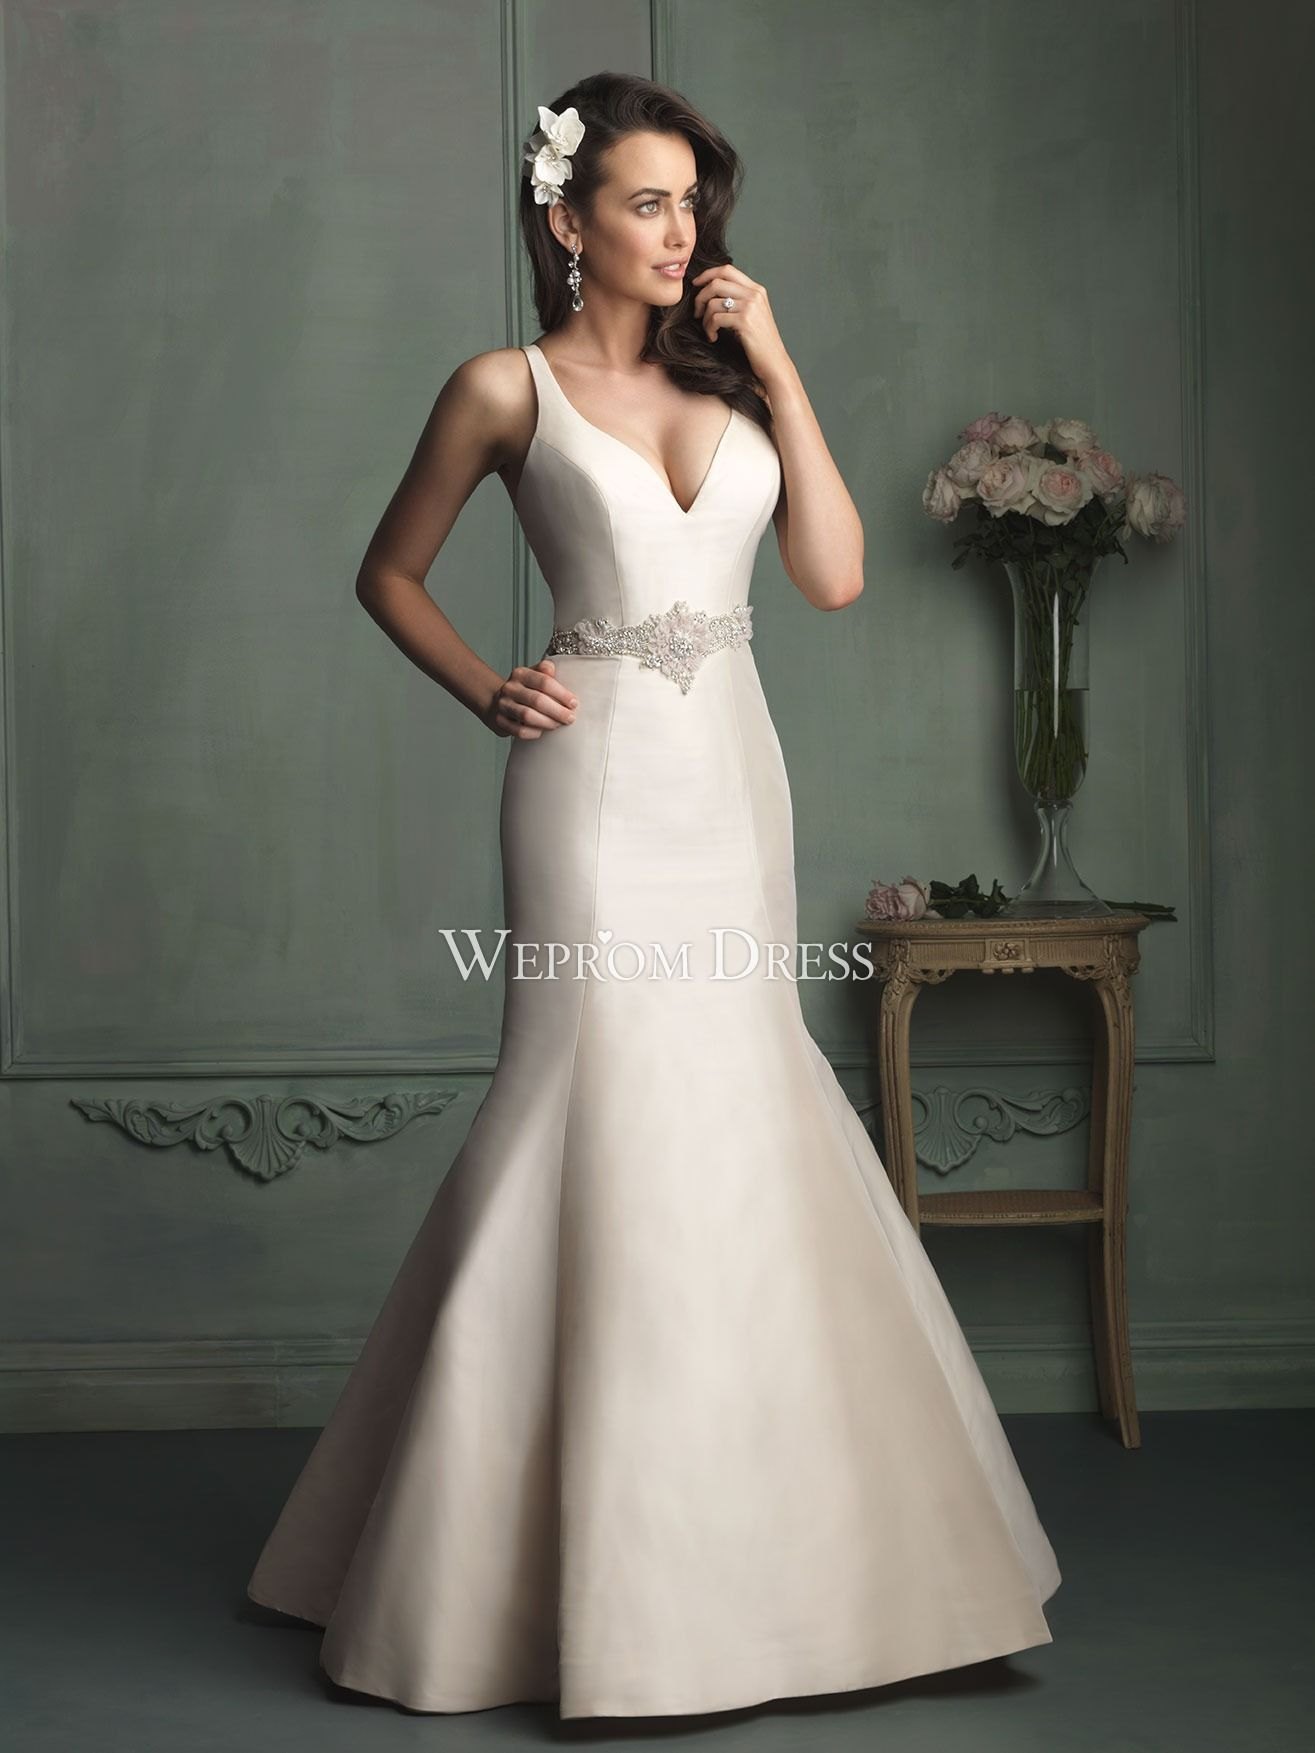 Elegant mermaid wedding dress with floral rhinestone wedding